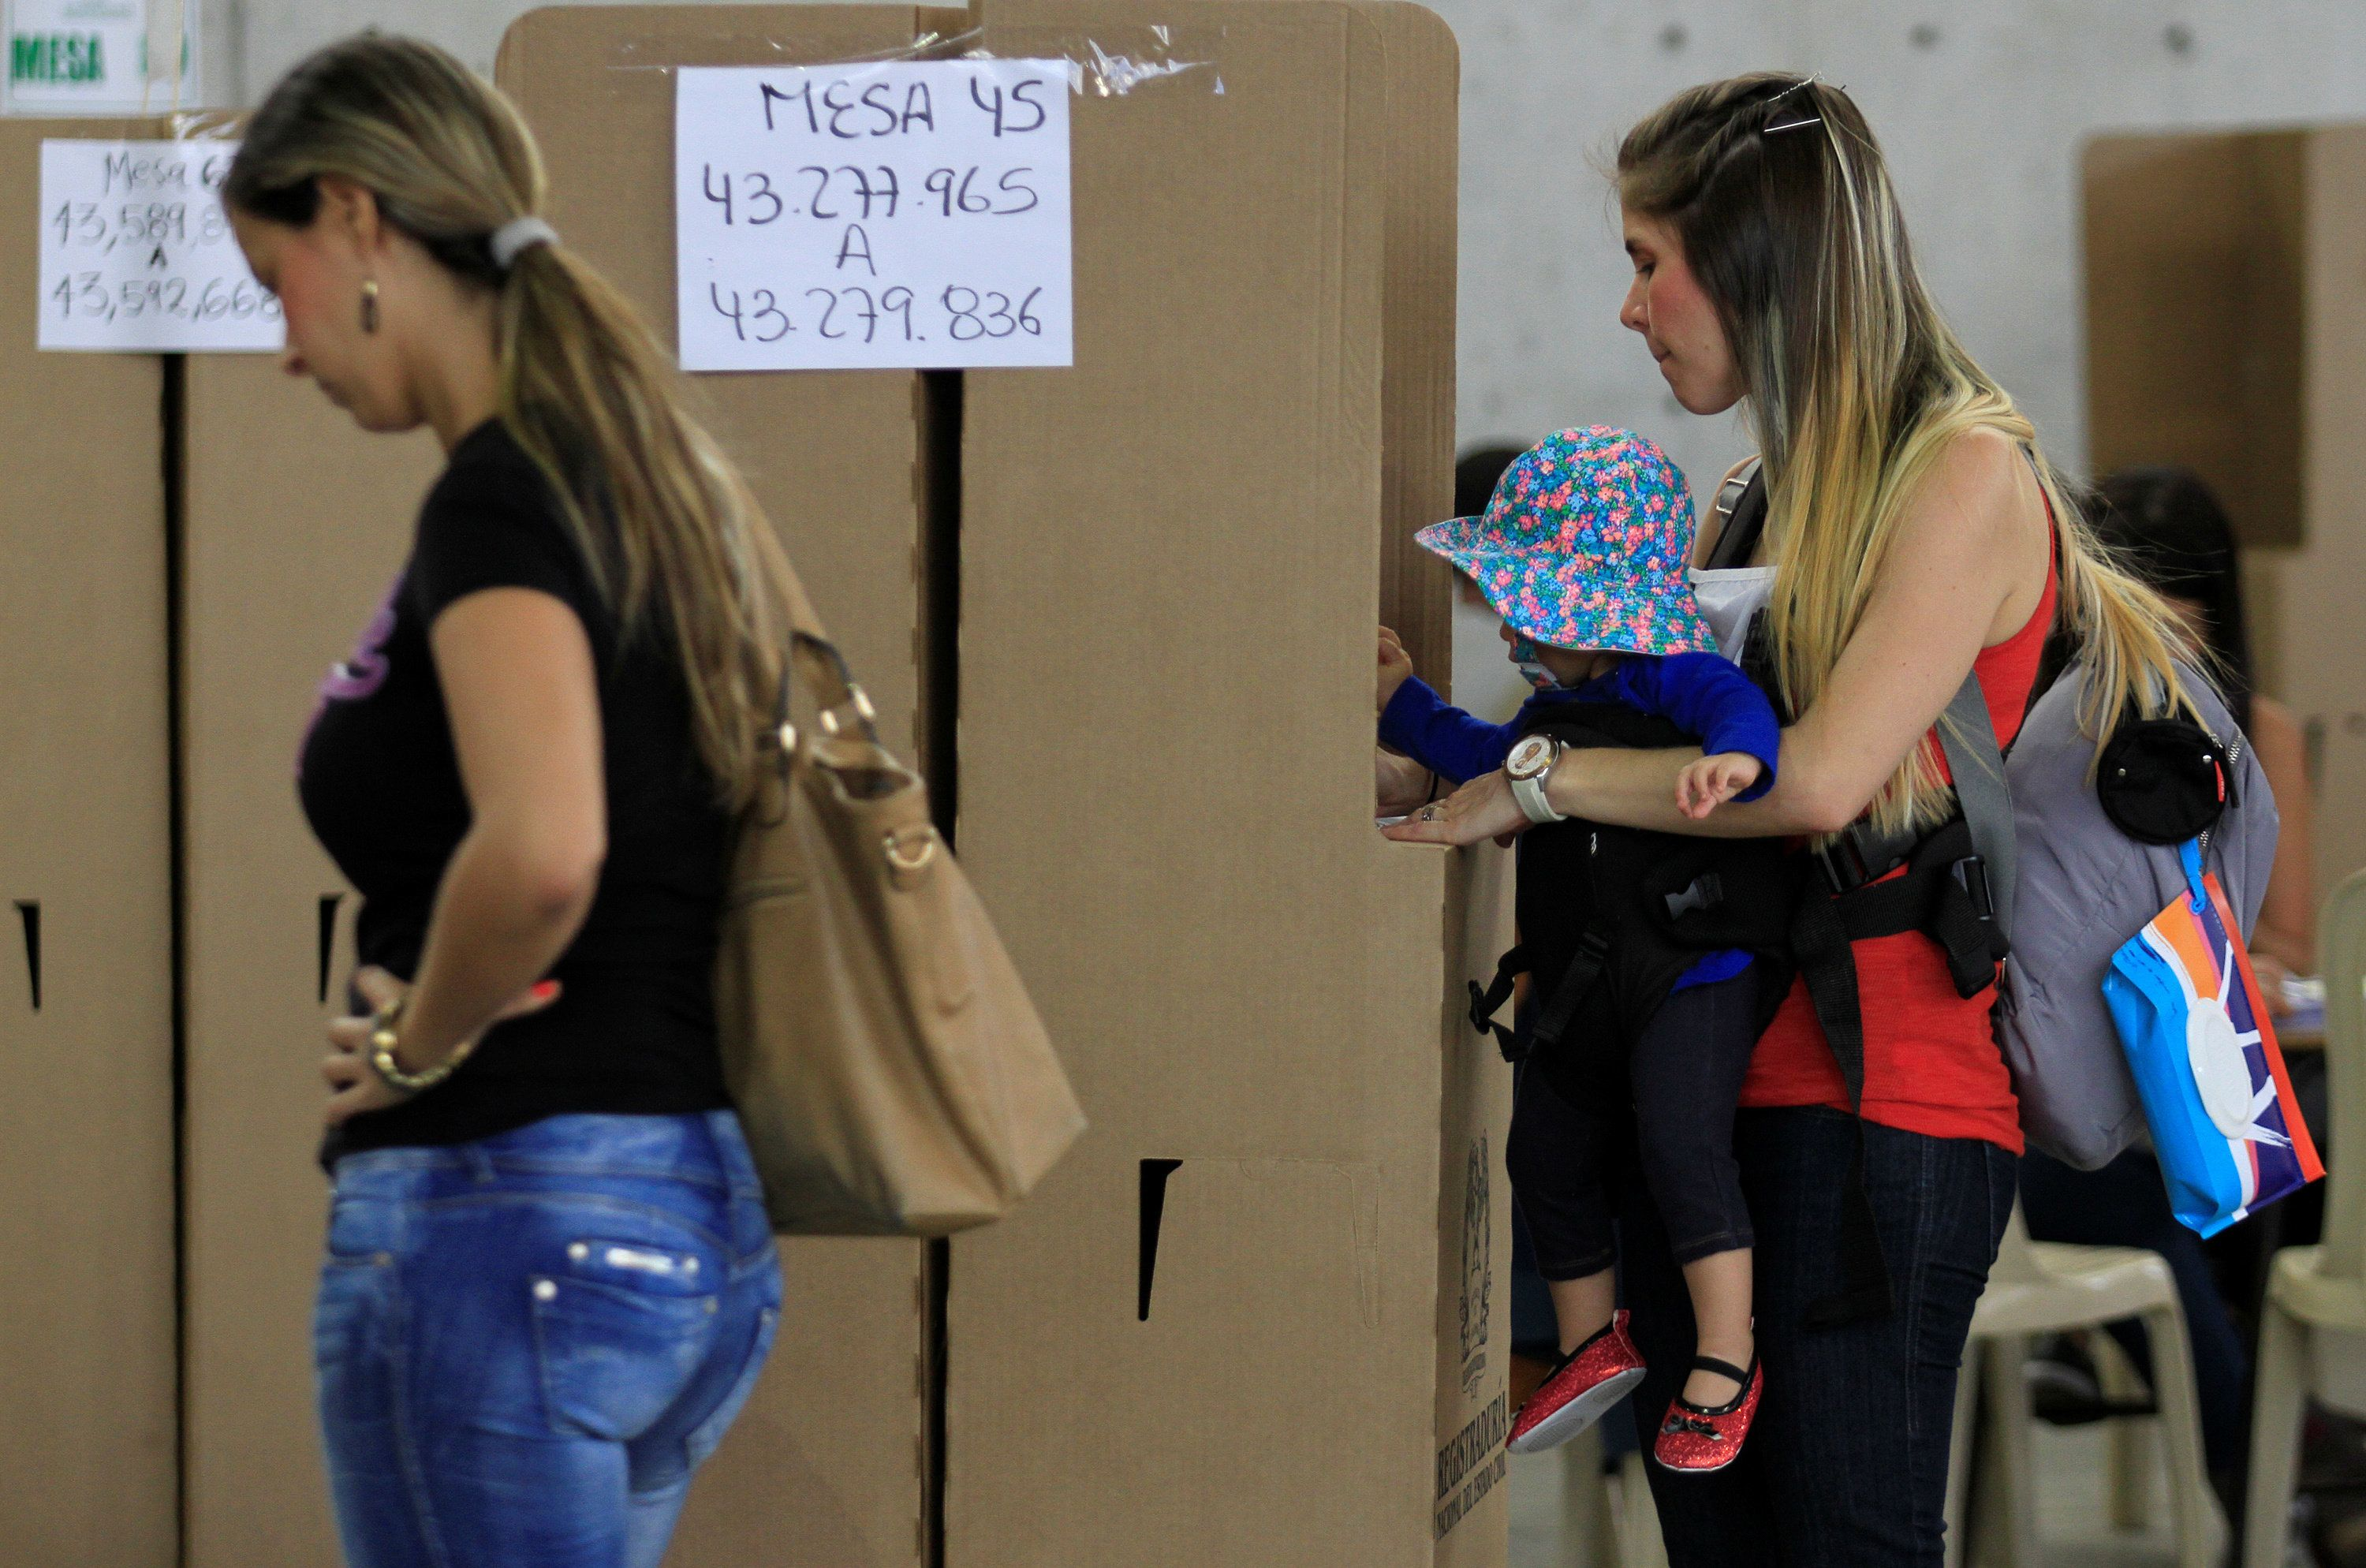 A woman carrying her daughter casts her vote in a referendum on a peace deal between the government and Revolutionary Armed Forces of Colombia (FARC) rebels in Medellin, Colombia, October 2, 2016. REUTERS/Fredy Builes